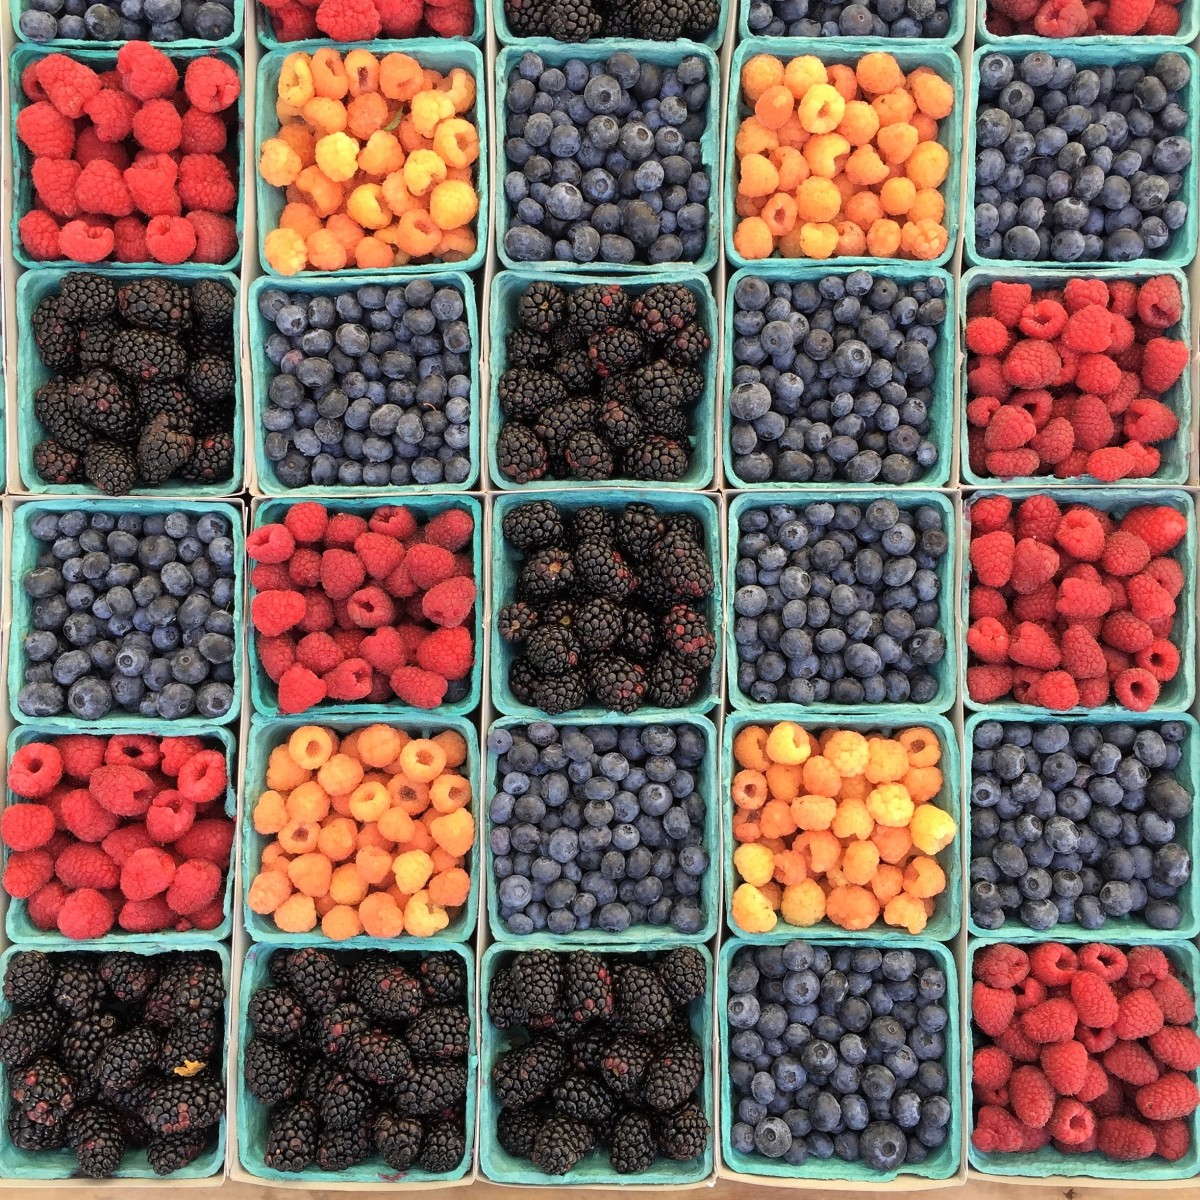 Unsweetened berries are a great component of a healthy diet.